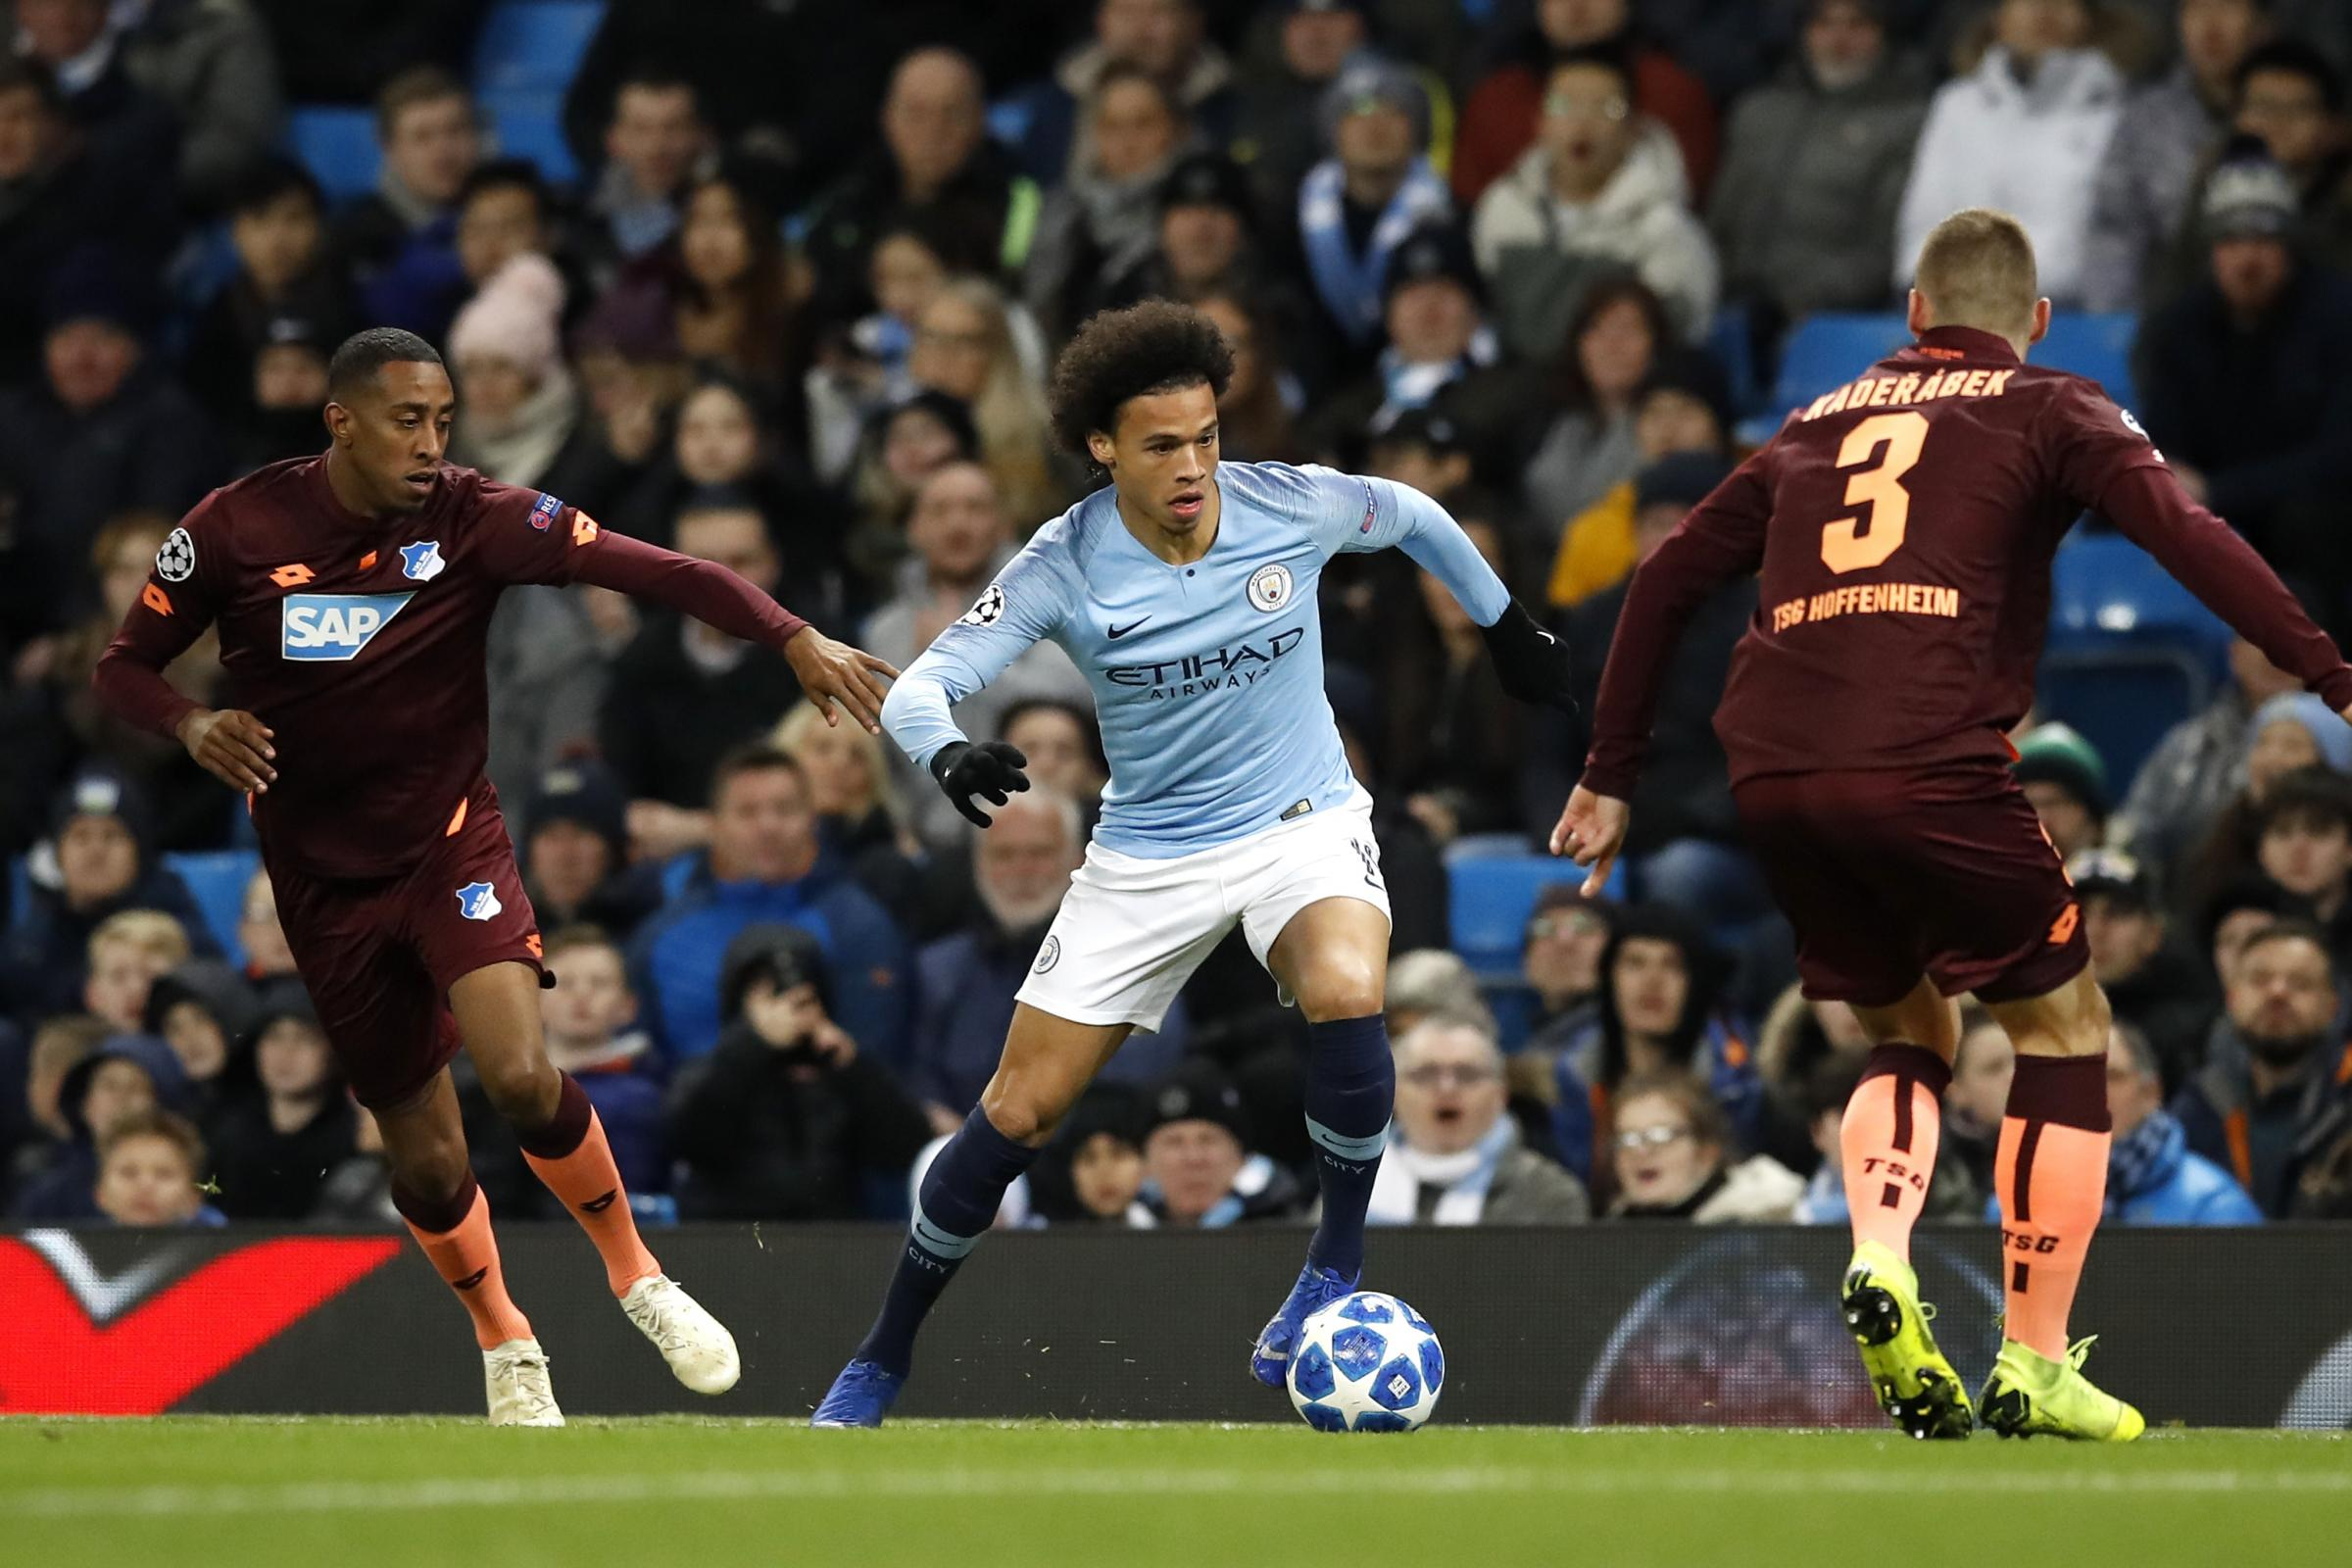 Leroy Sane was impressive as Manchester City overcame Hoffenheim